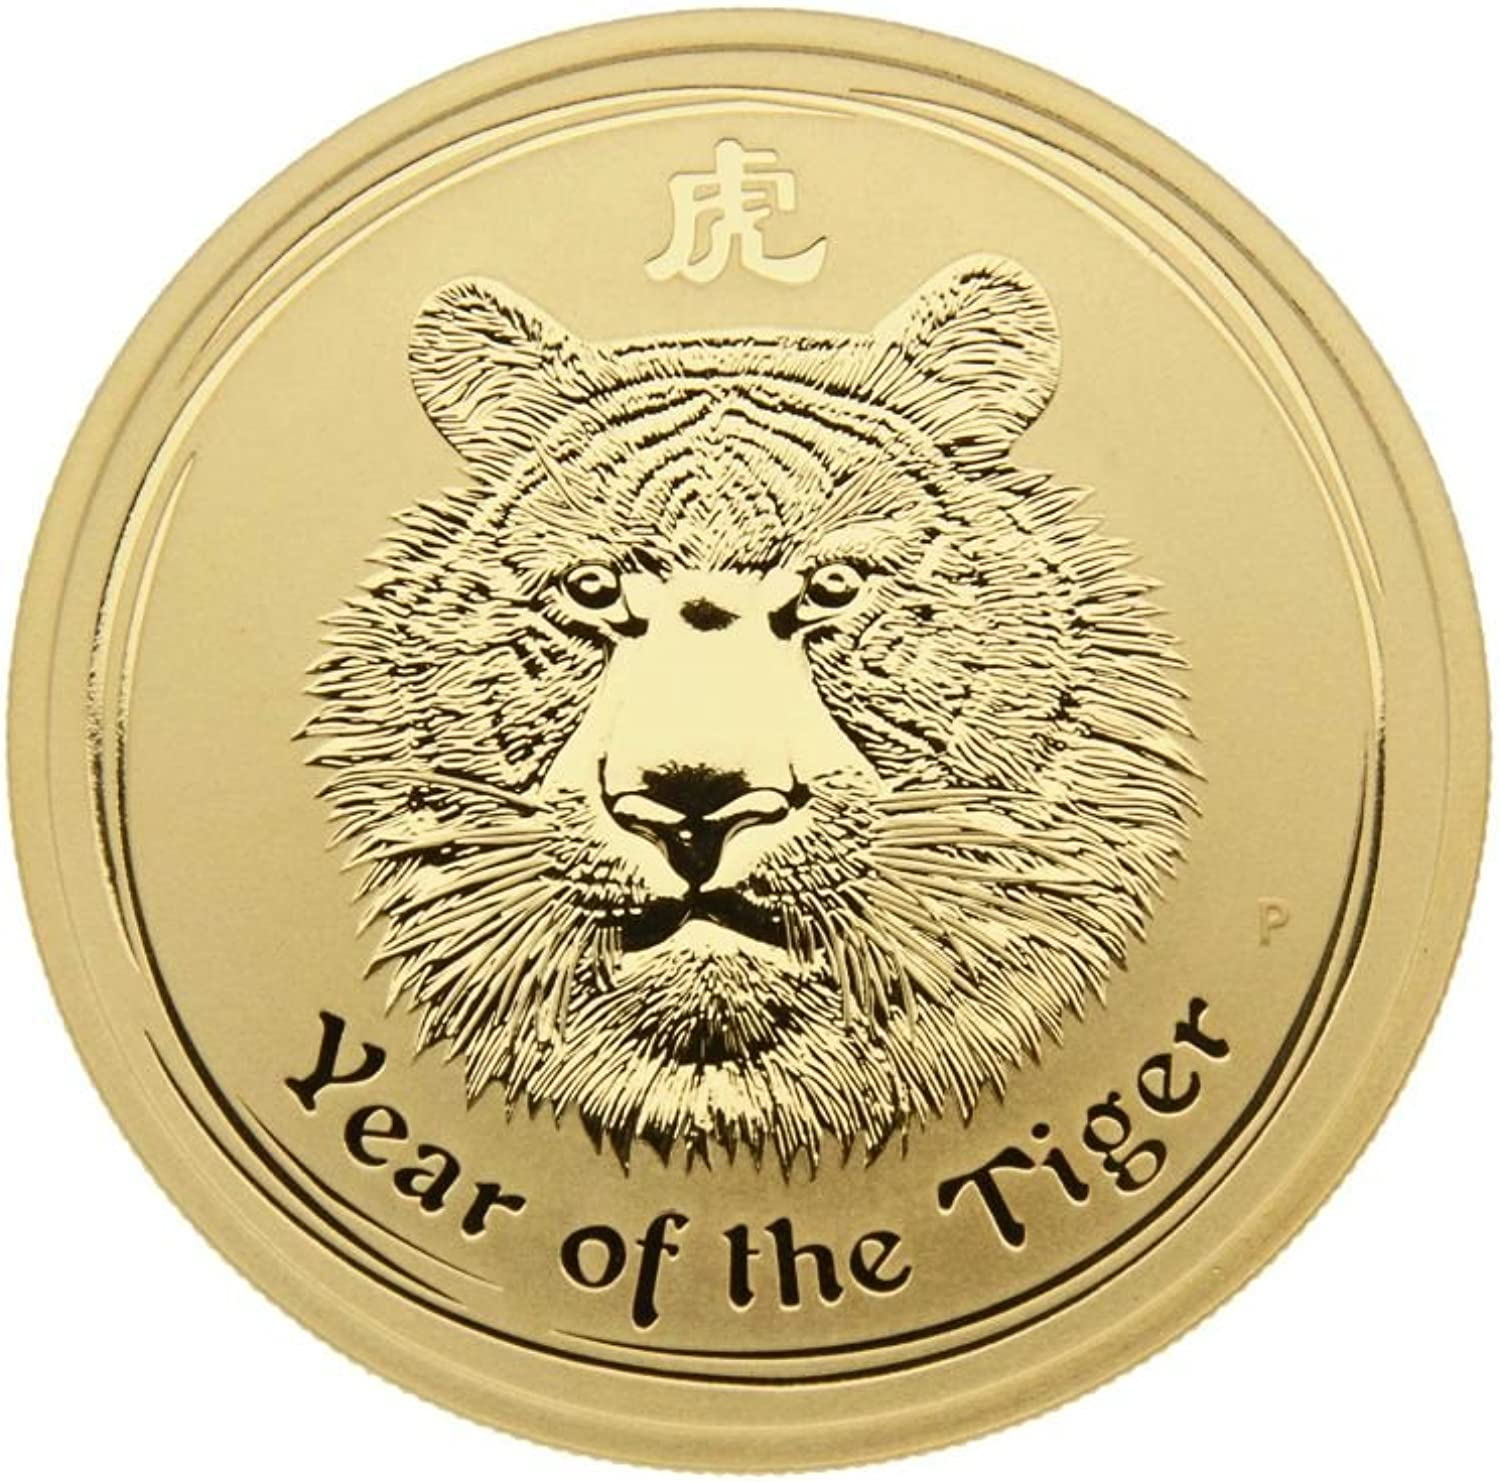 1 oz Goldmünze Australien 2010 Lunar Serie II  Year of the Tiger  - 1 Unze 999,9 Gold